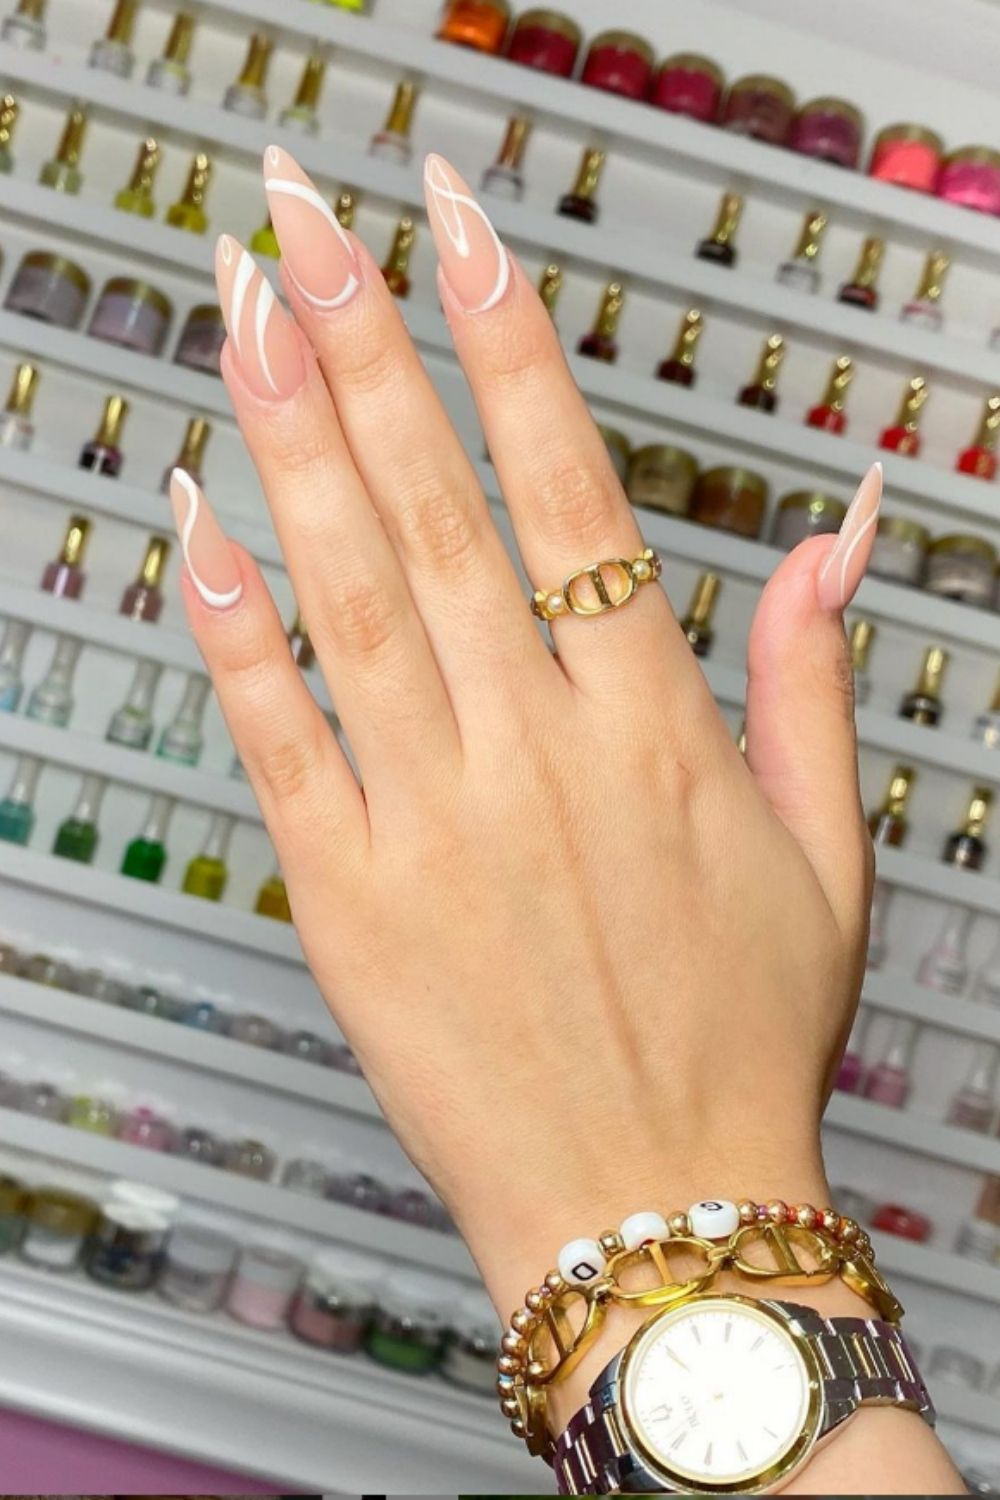 Nude acrylic nails for your summer holiday 2021